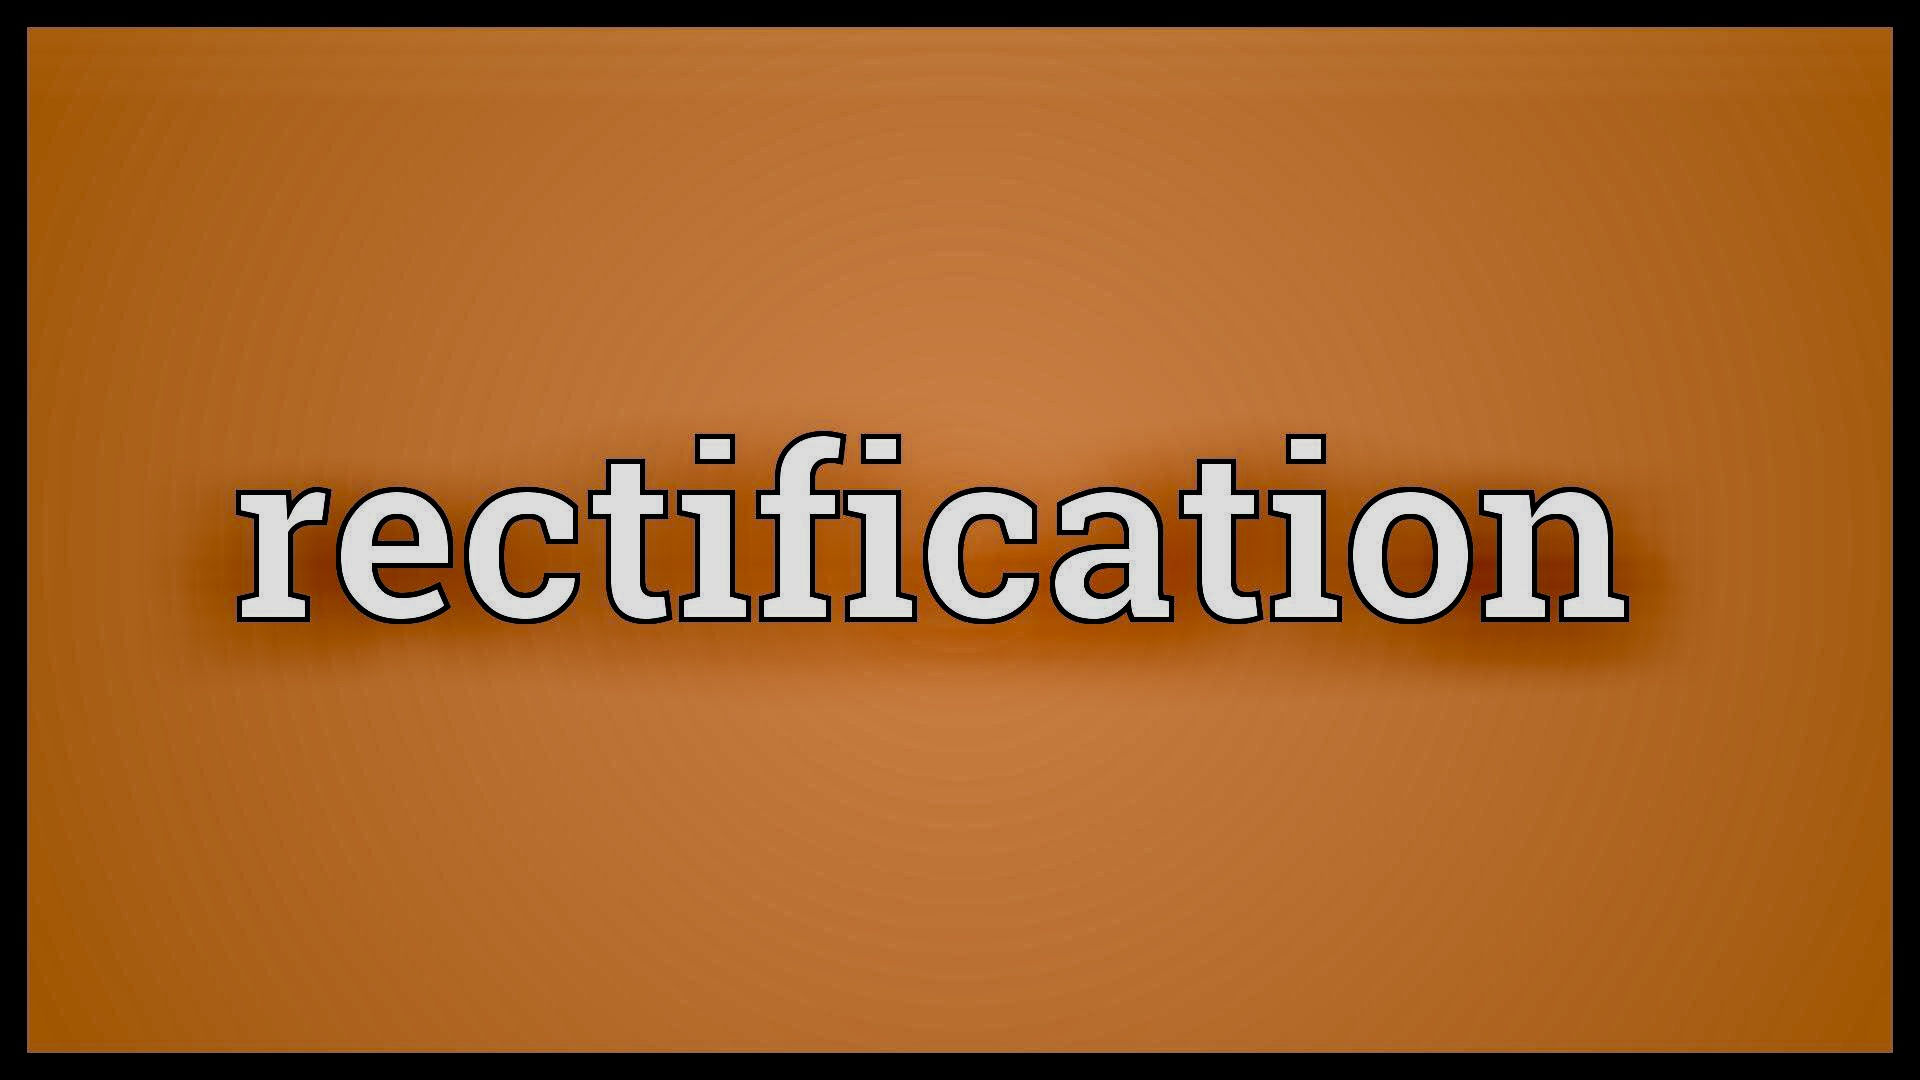 Rectification of a Document